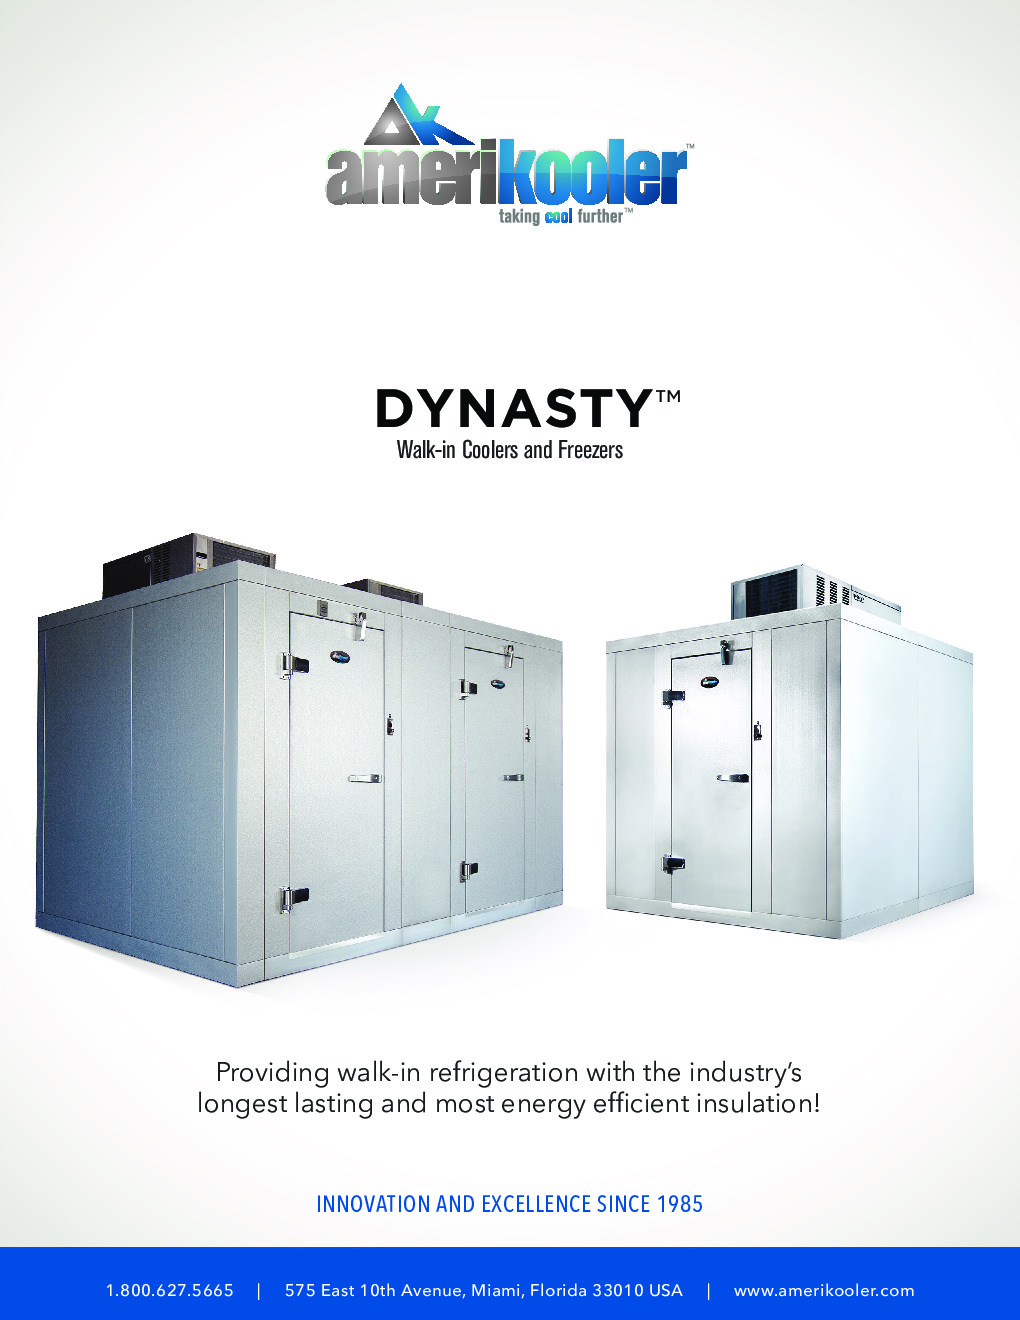 AmeriKooler DW071477F-7/7-SC 7' X 14' Walk-In Cooler, 7' L Cooler with Floor and 7' L Freezer, Self Contained